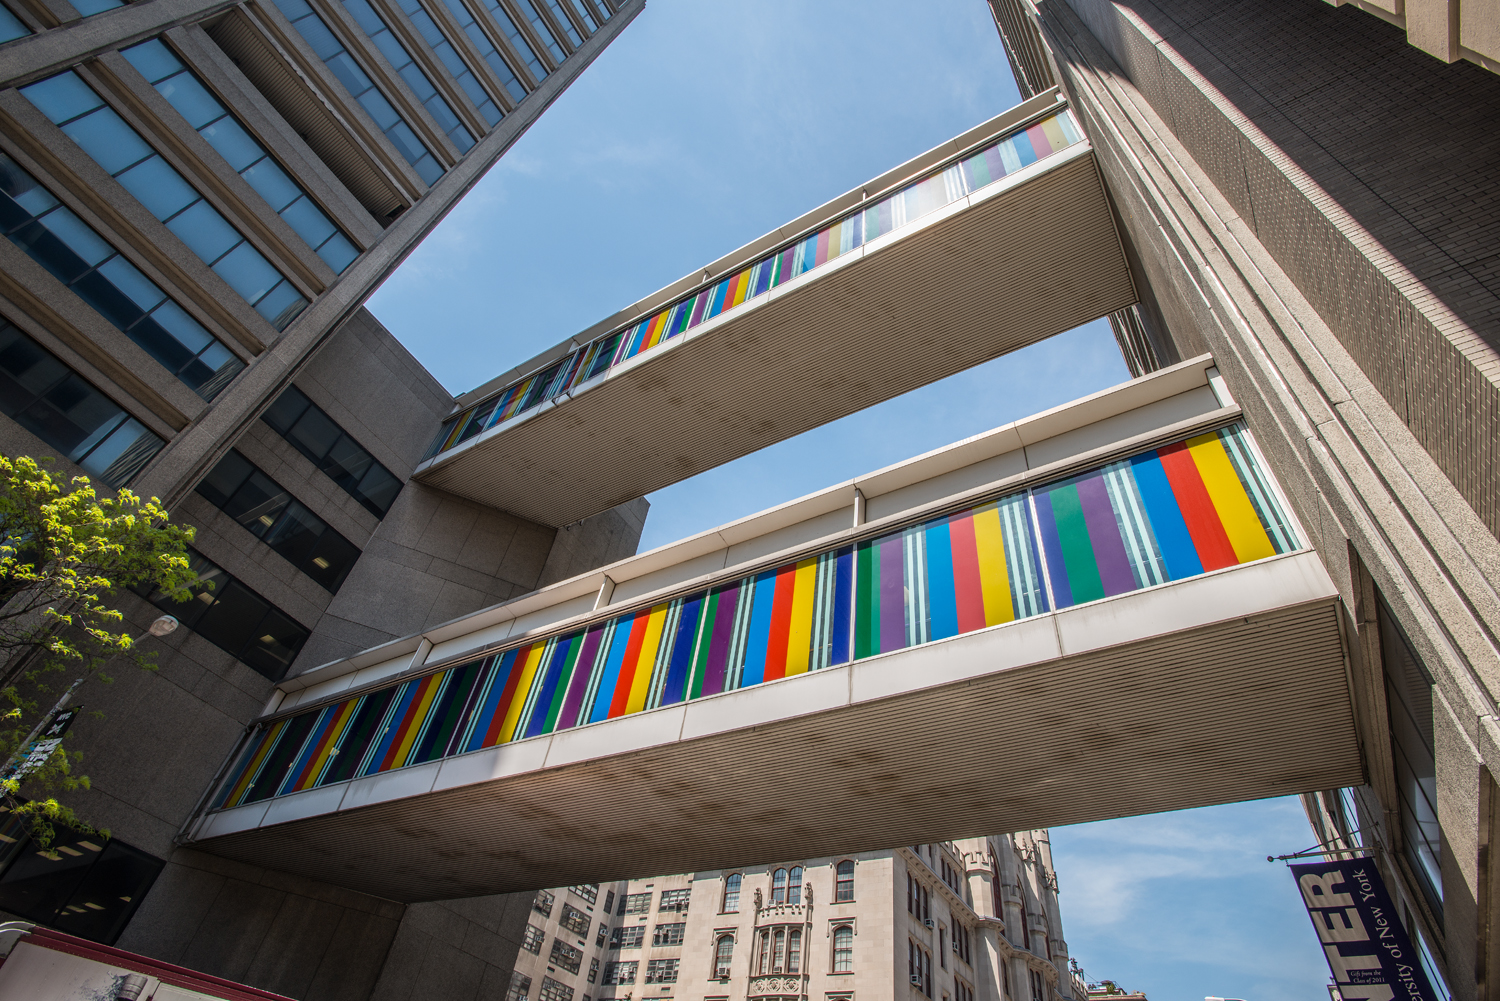 Photo-souvenir: Bayadères for Two Skywalks , March 2016, work in situ, Hunter College, New York, NY, United States, March–December 2016. © Daniel Buren/ADAGP, Paris. Photo by Bill Orcutt.